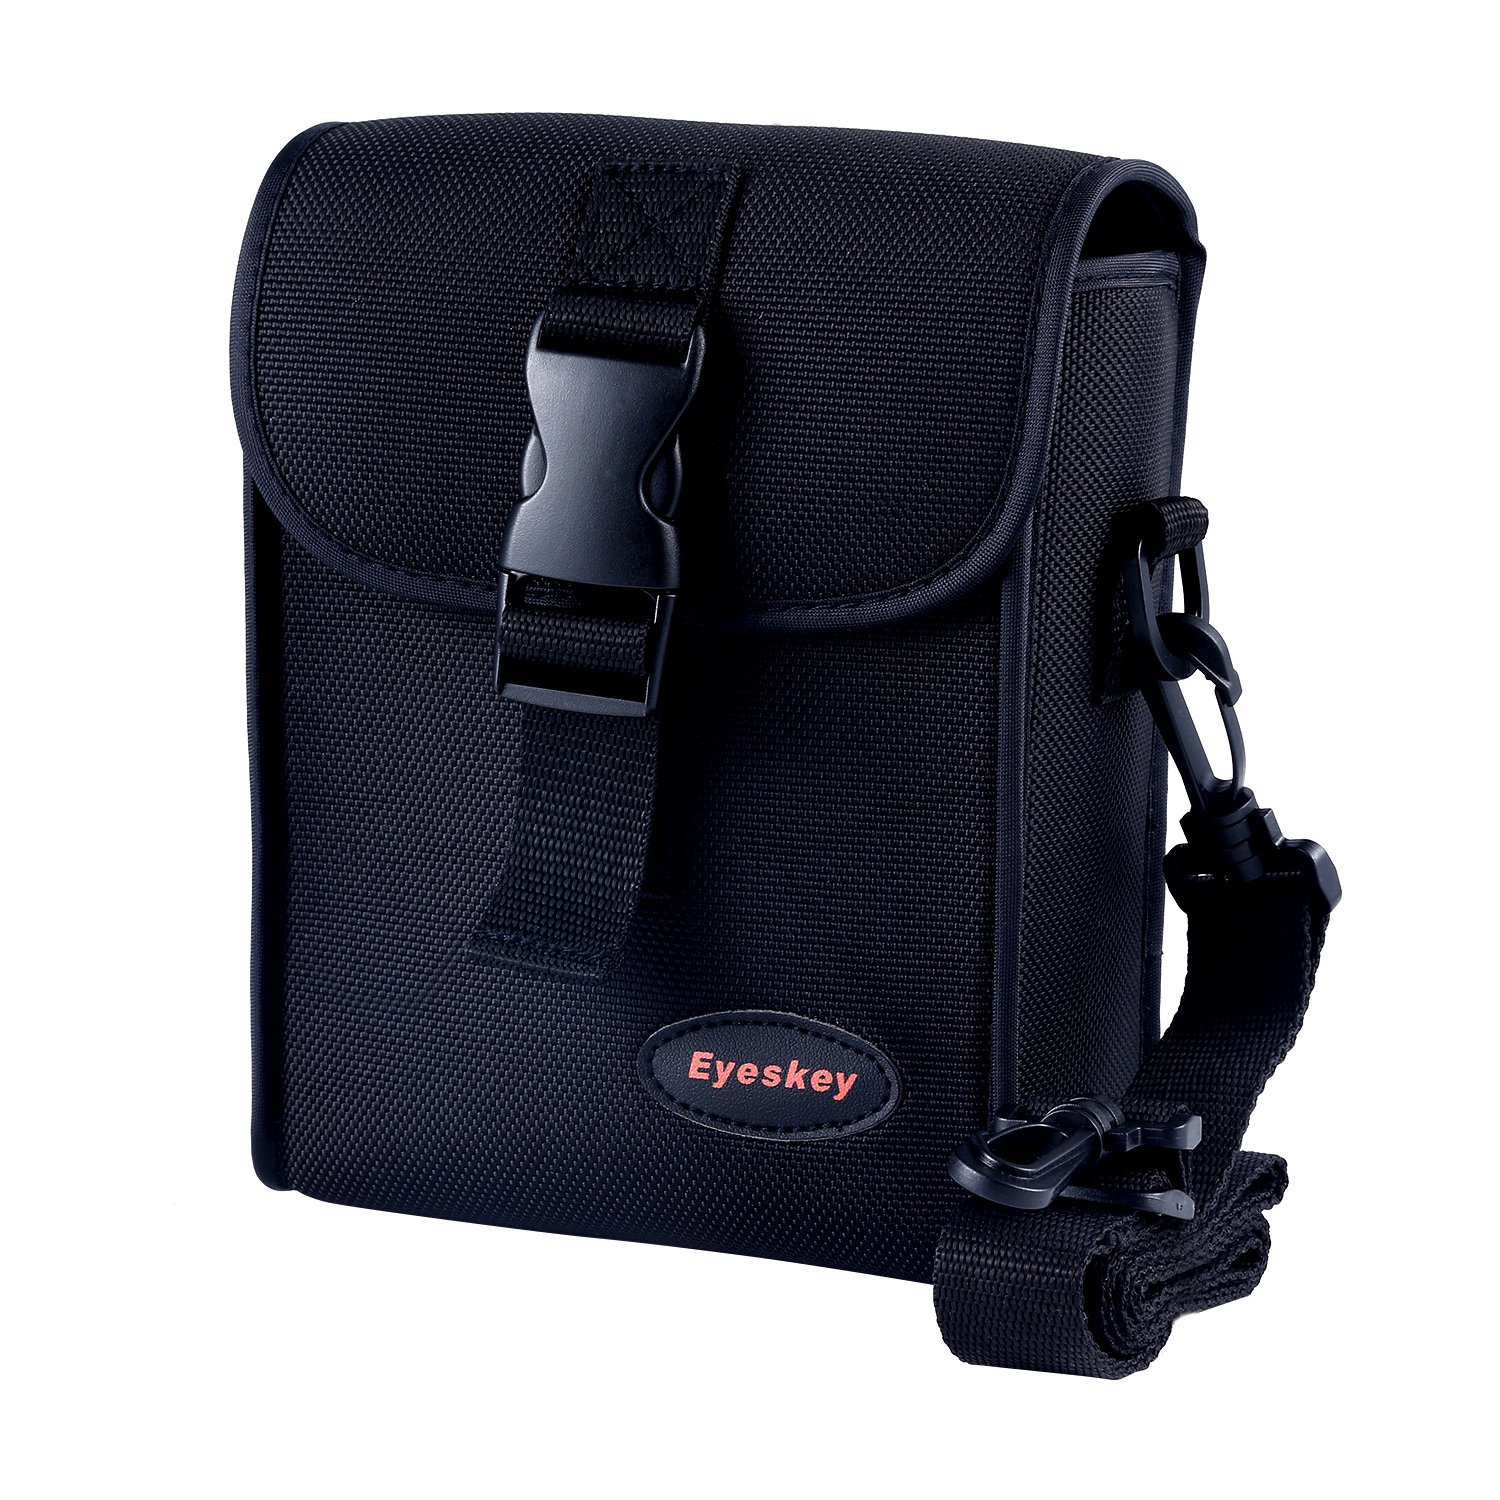 Eyeskey Universal 42mm Roof Prism Binoculars Case, Essential Accessory for Your Valuable Binoculars, and Durable 4331897223